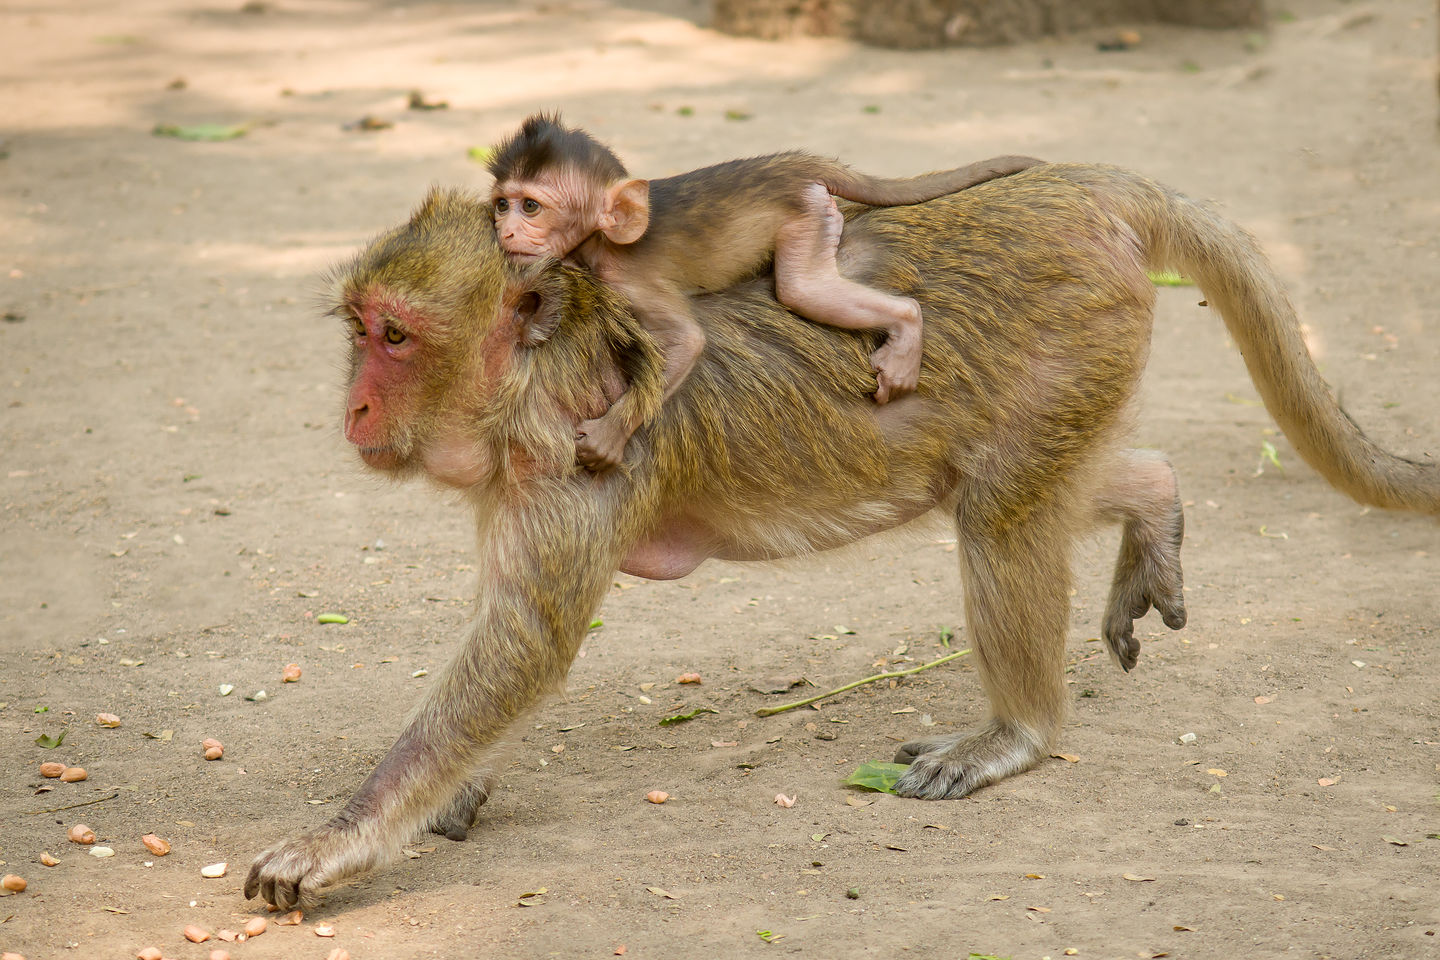 Mama macaque monkey and her young